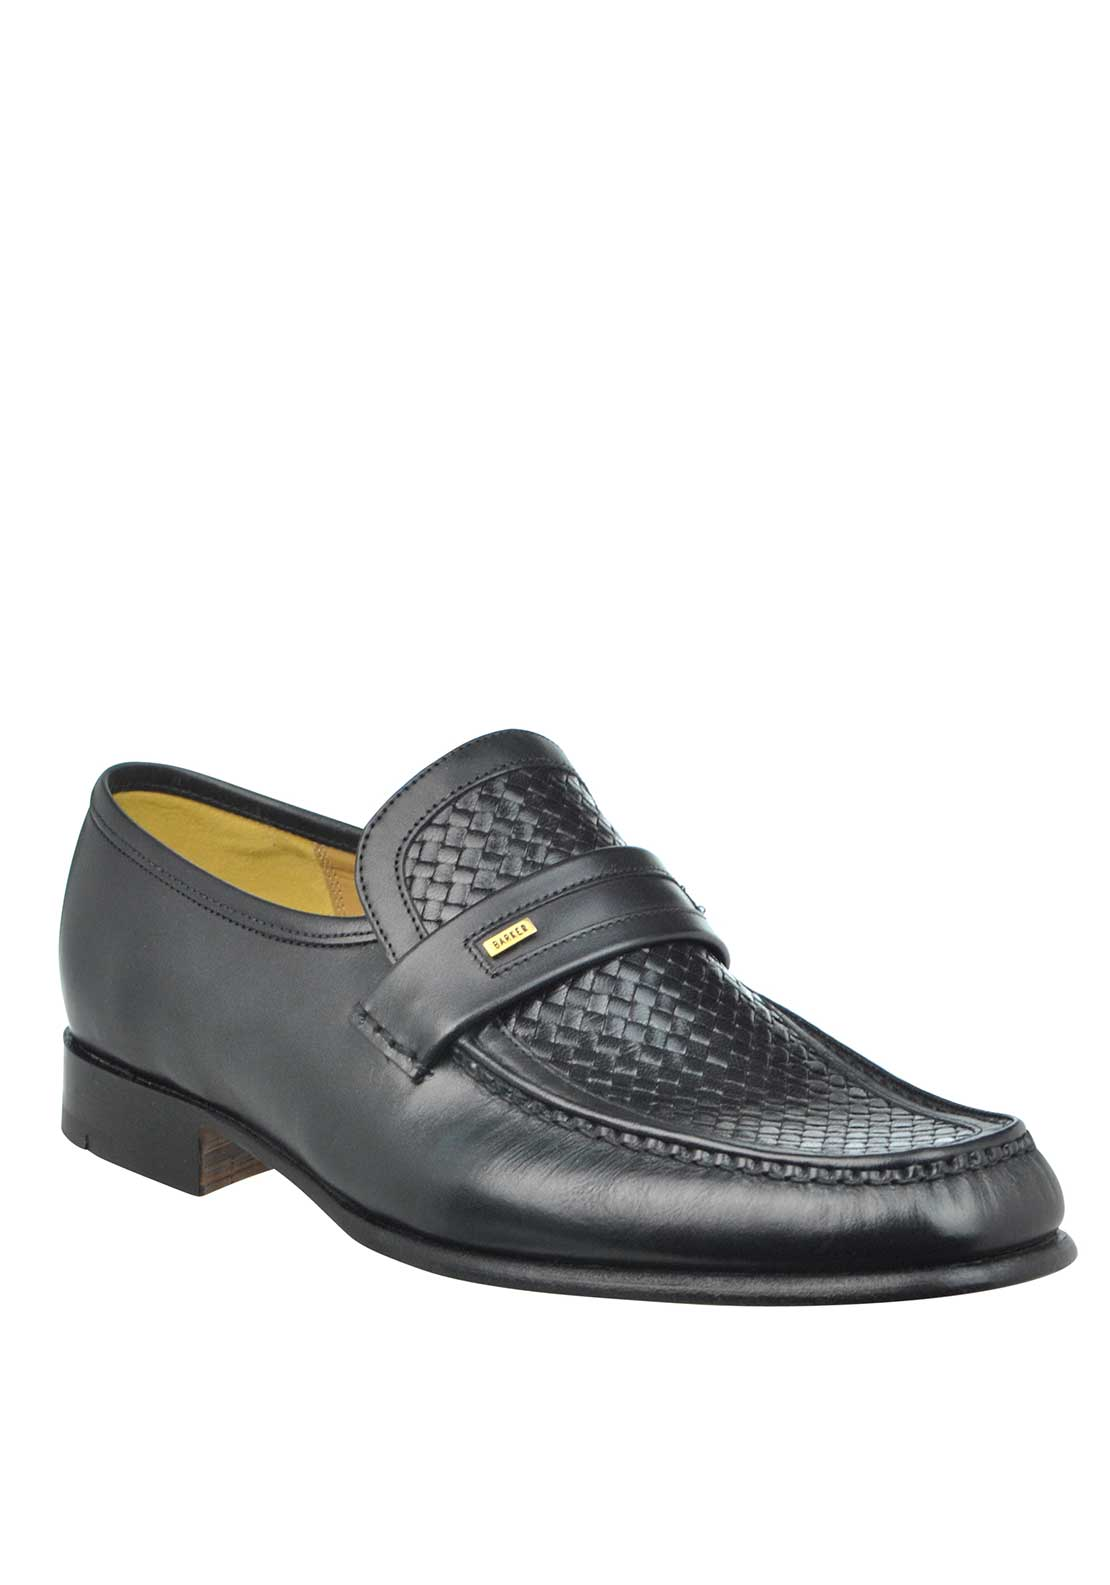 Barker Mens Adrian Moccasin Calf Leather Loafer, Black